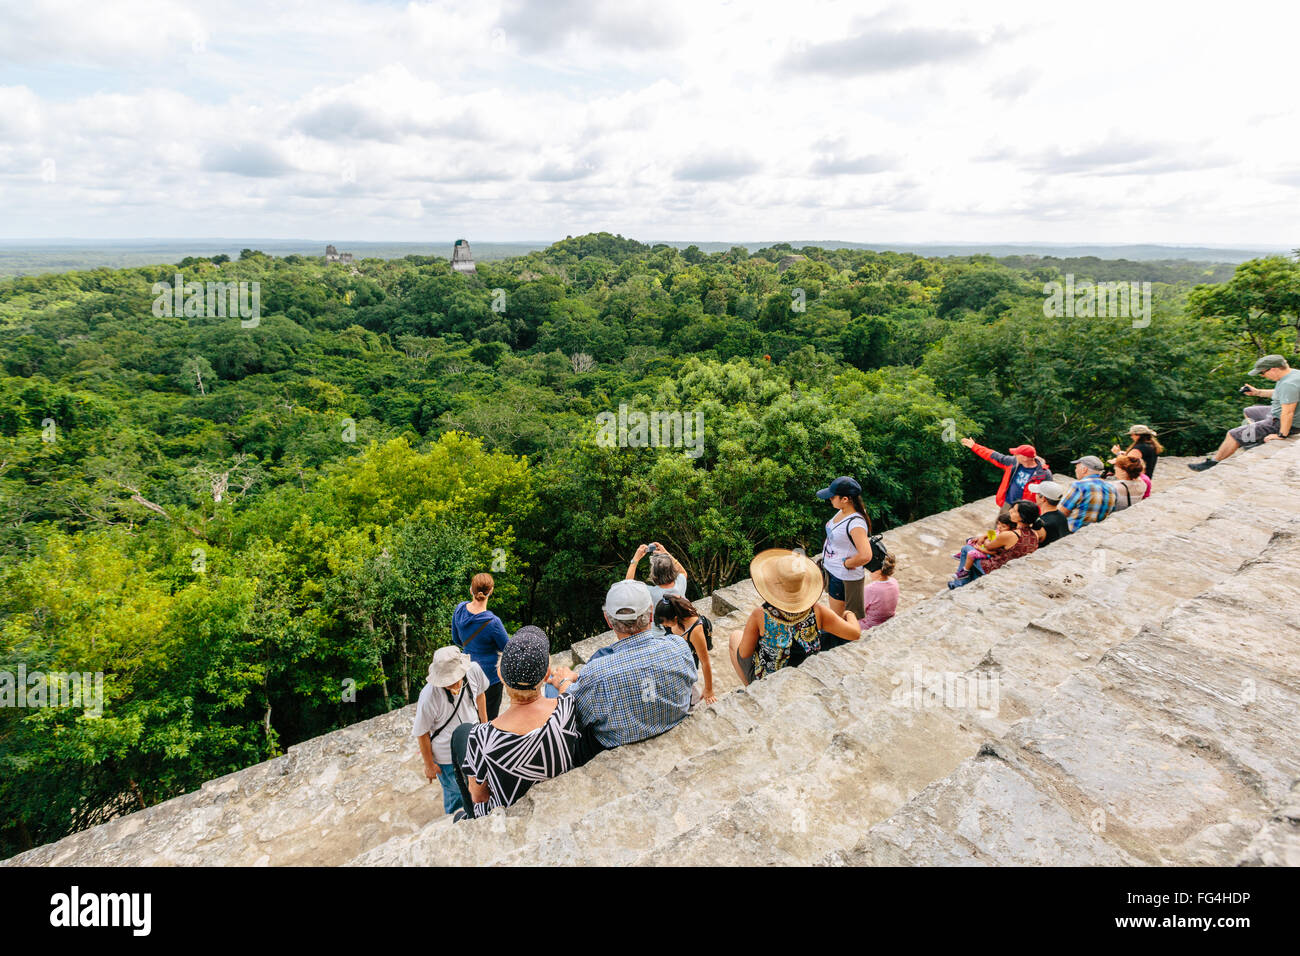 Tourists on top of Temple IV, Temples I, II, III & V rise above the forest canopy Stock Photo